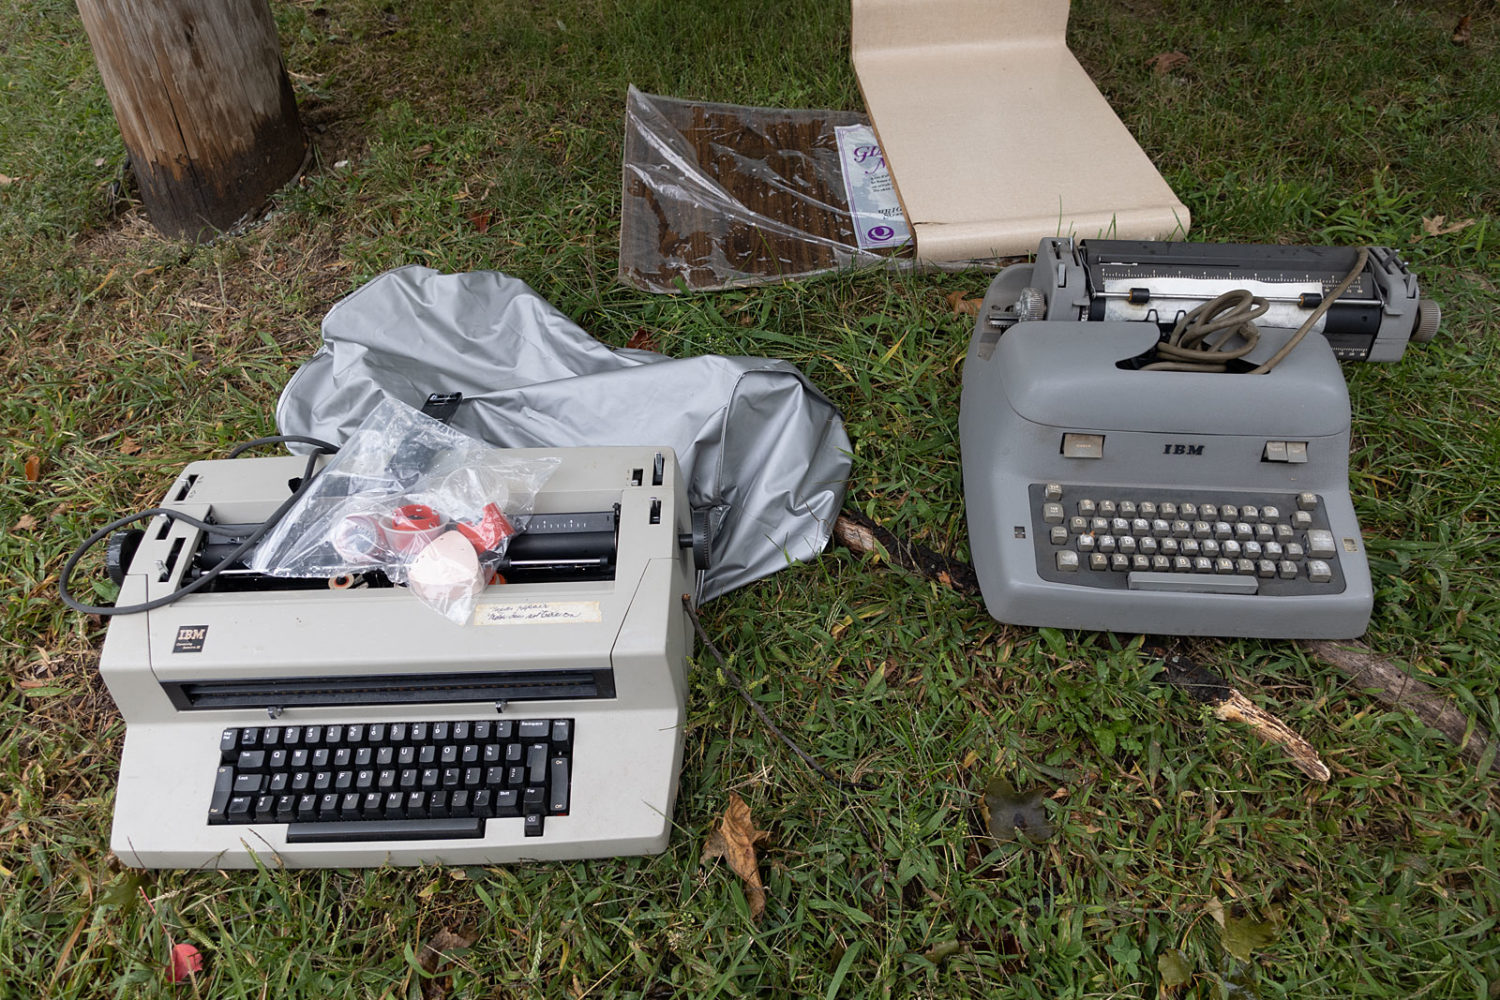 IBM typewriters by curb on Wisner Road